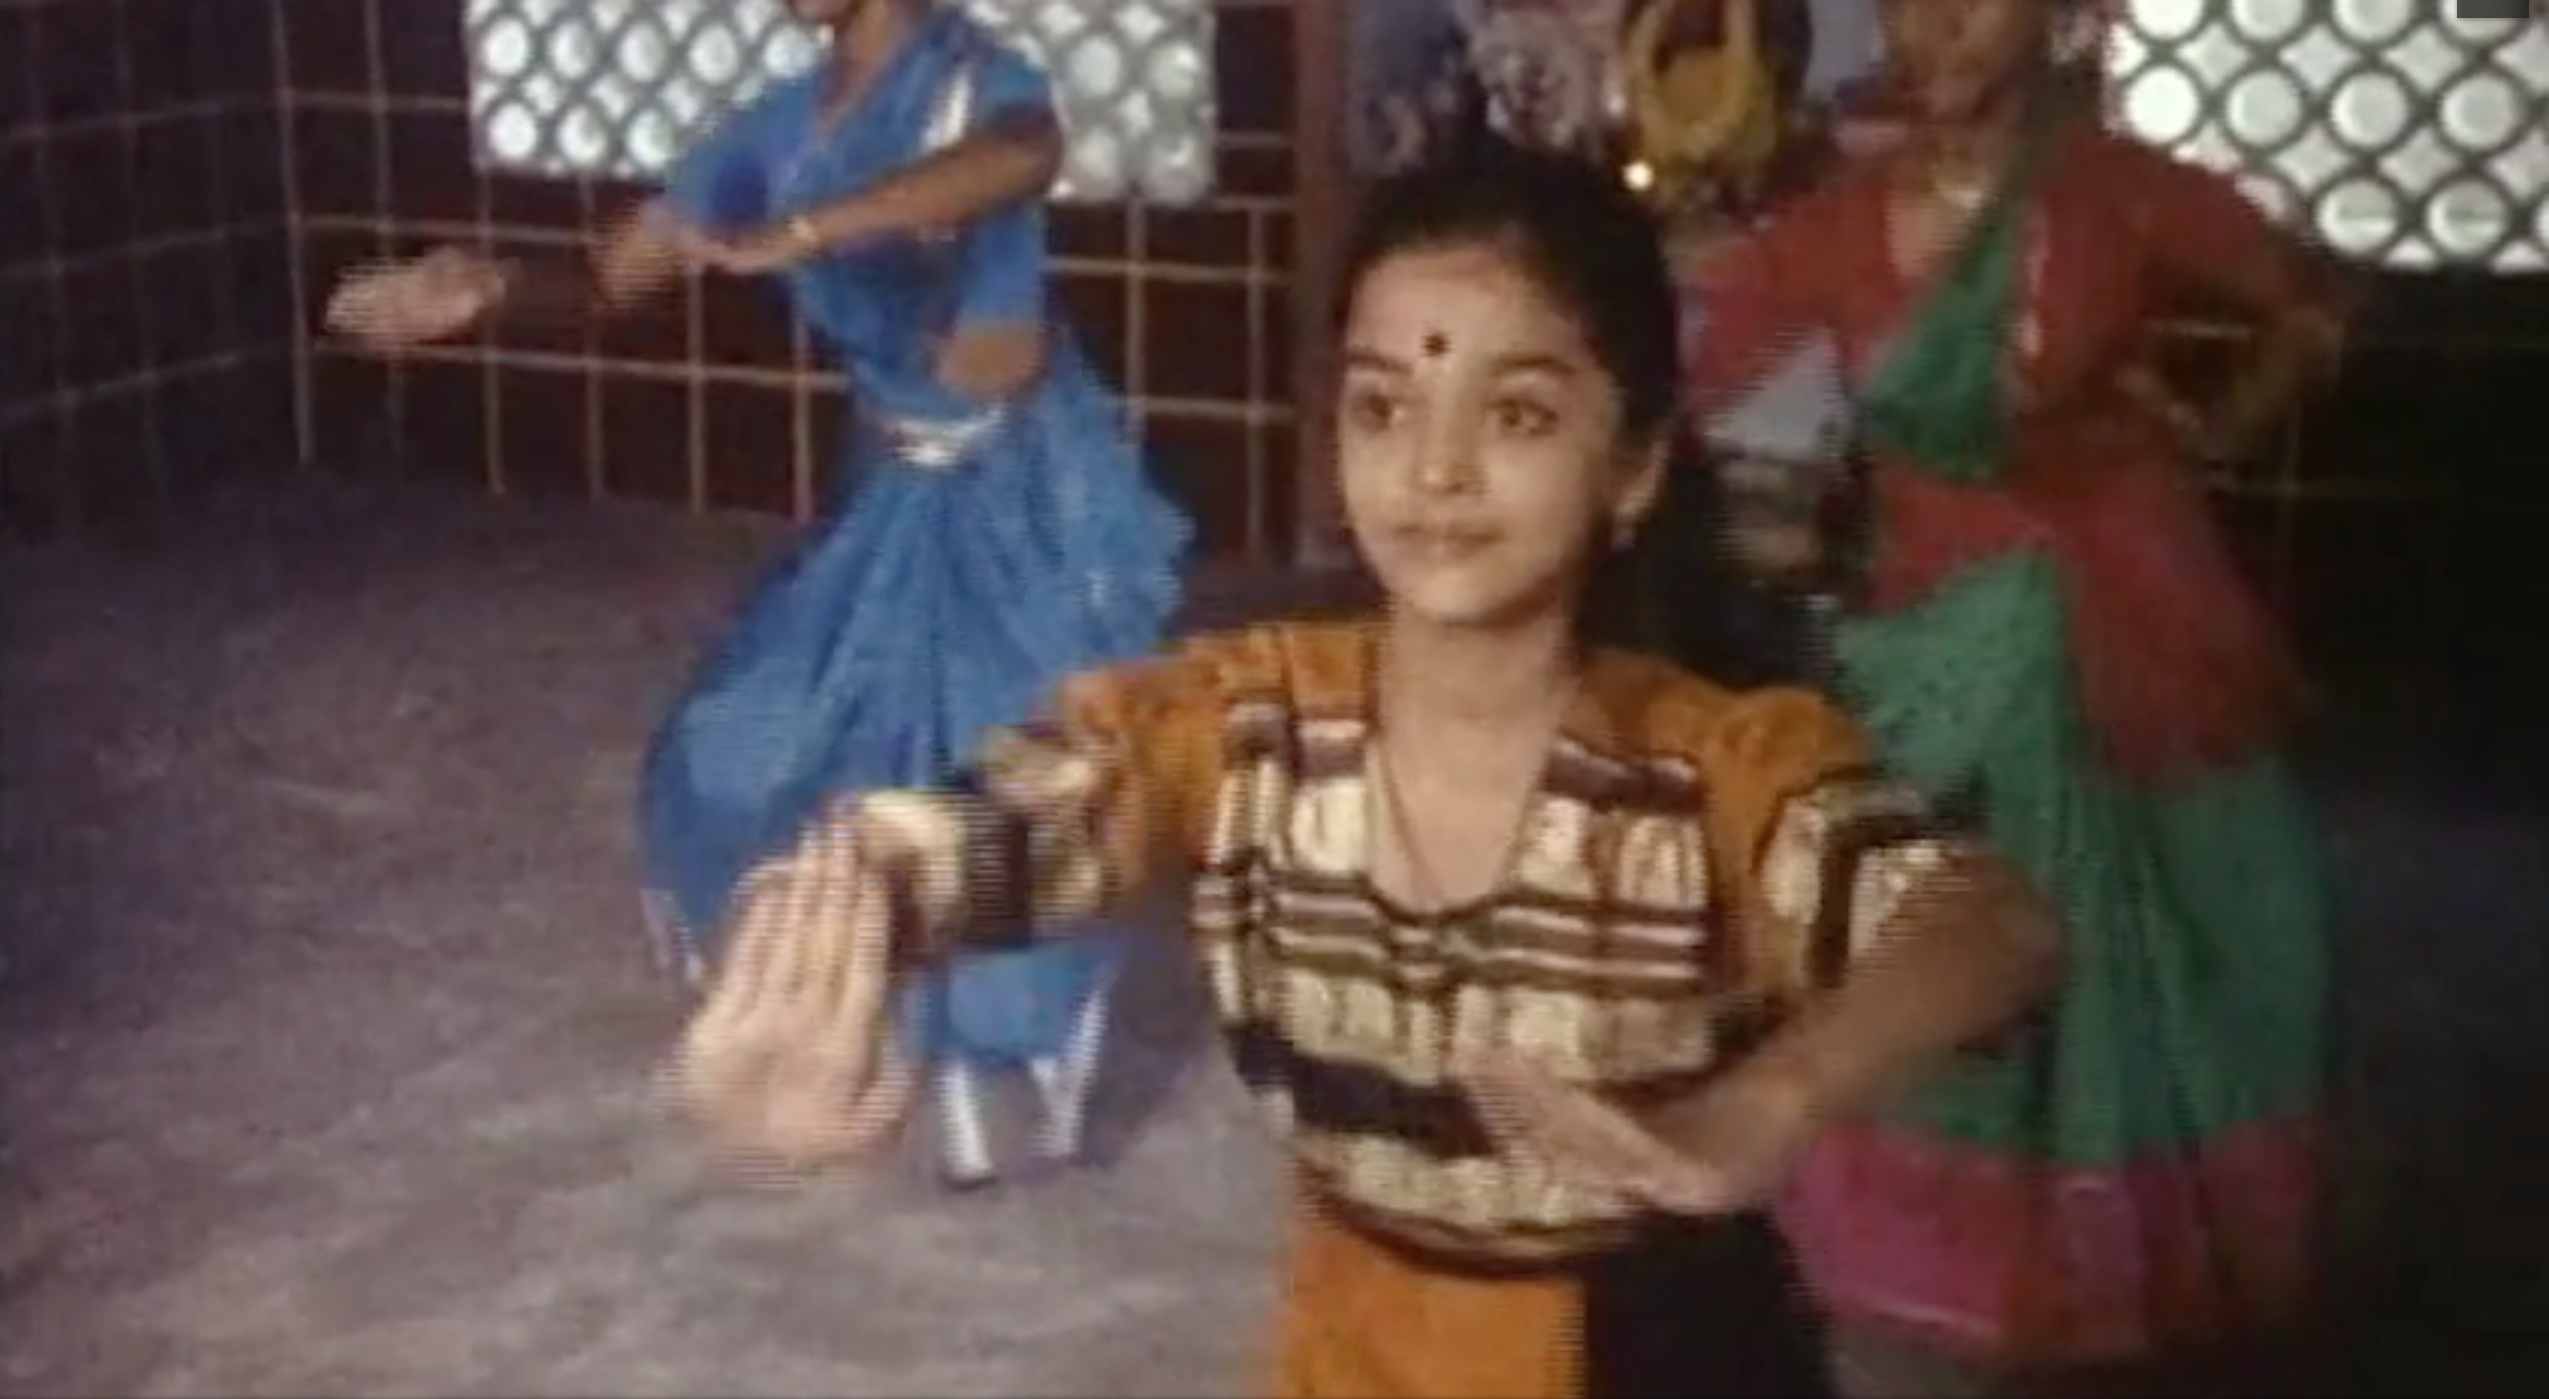 REGARD 394 - danse indienne - RLHD.TV